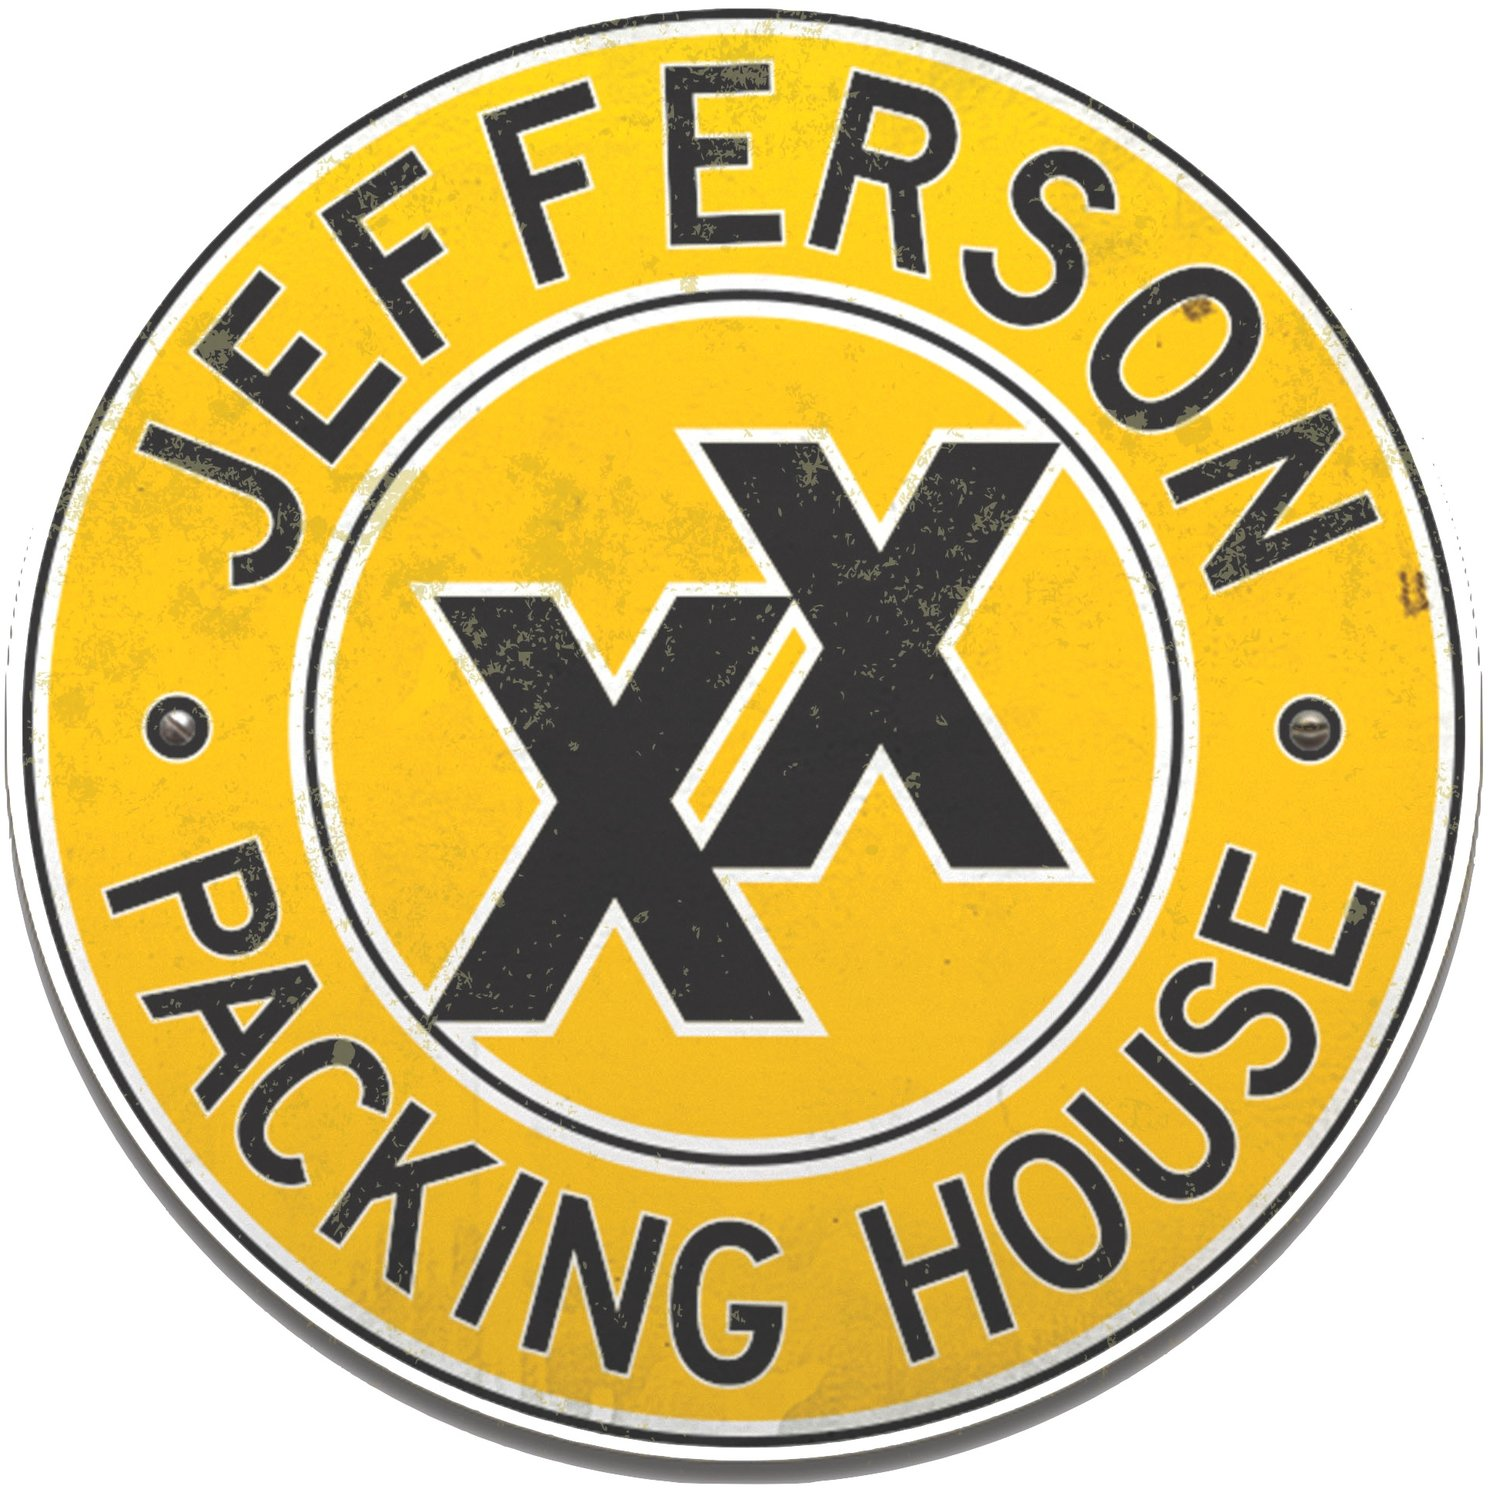 JEFFERSON PACKING HOUSE